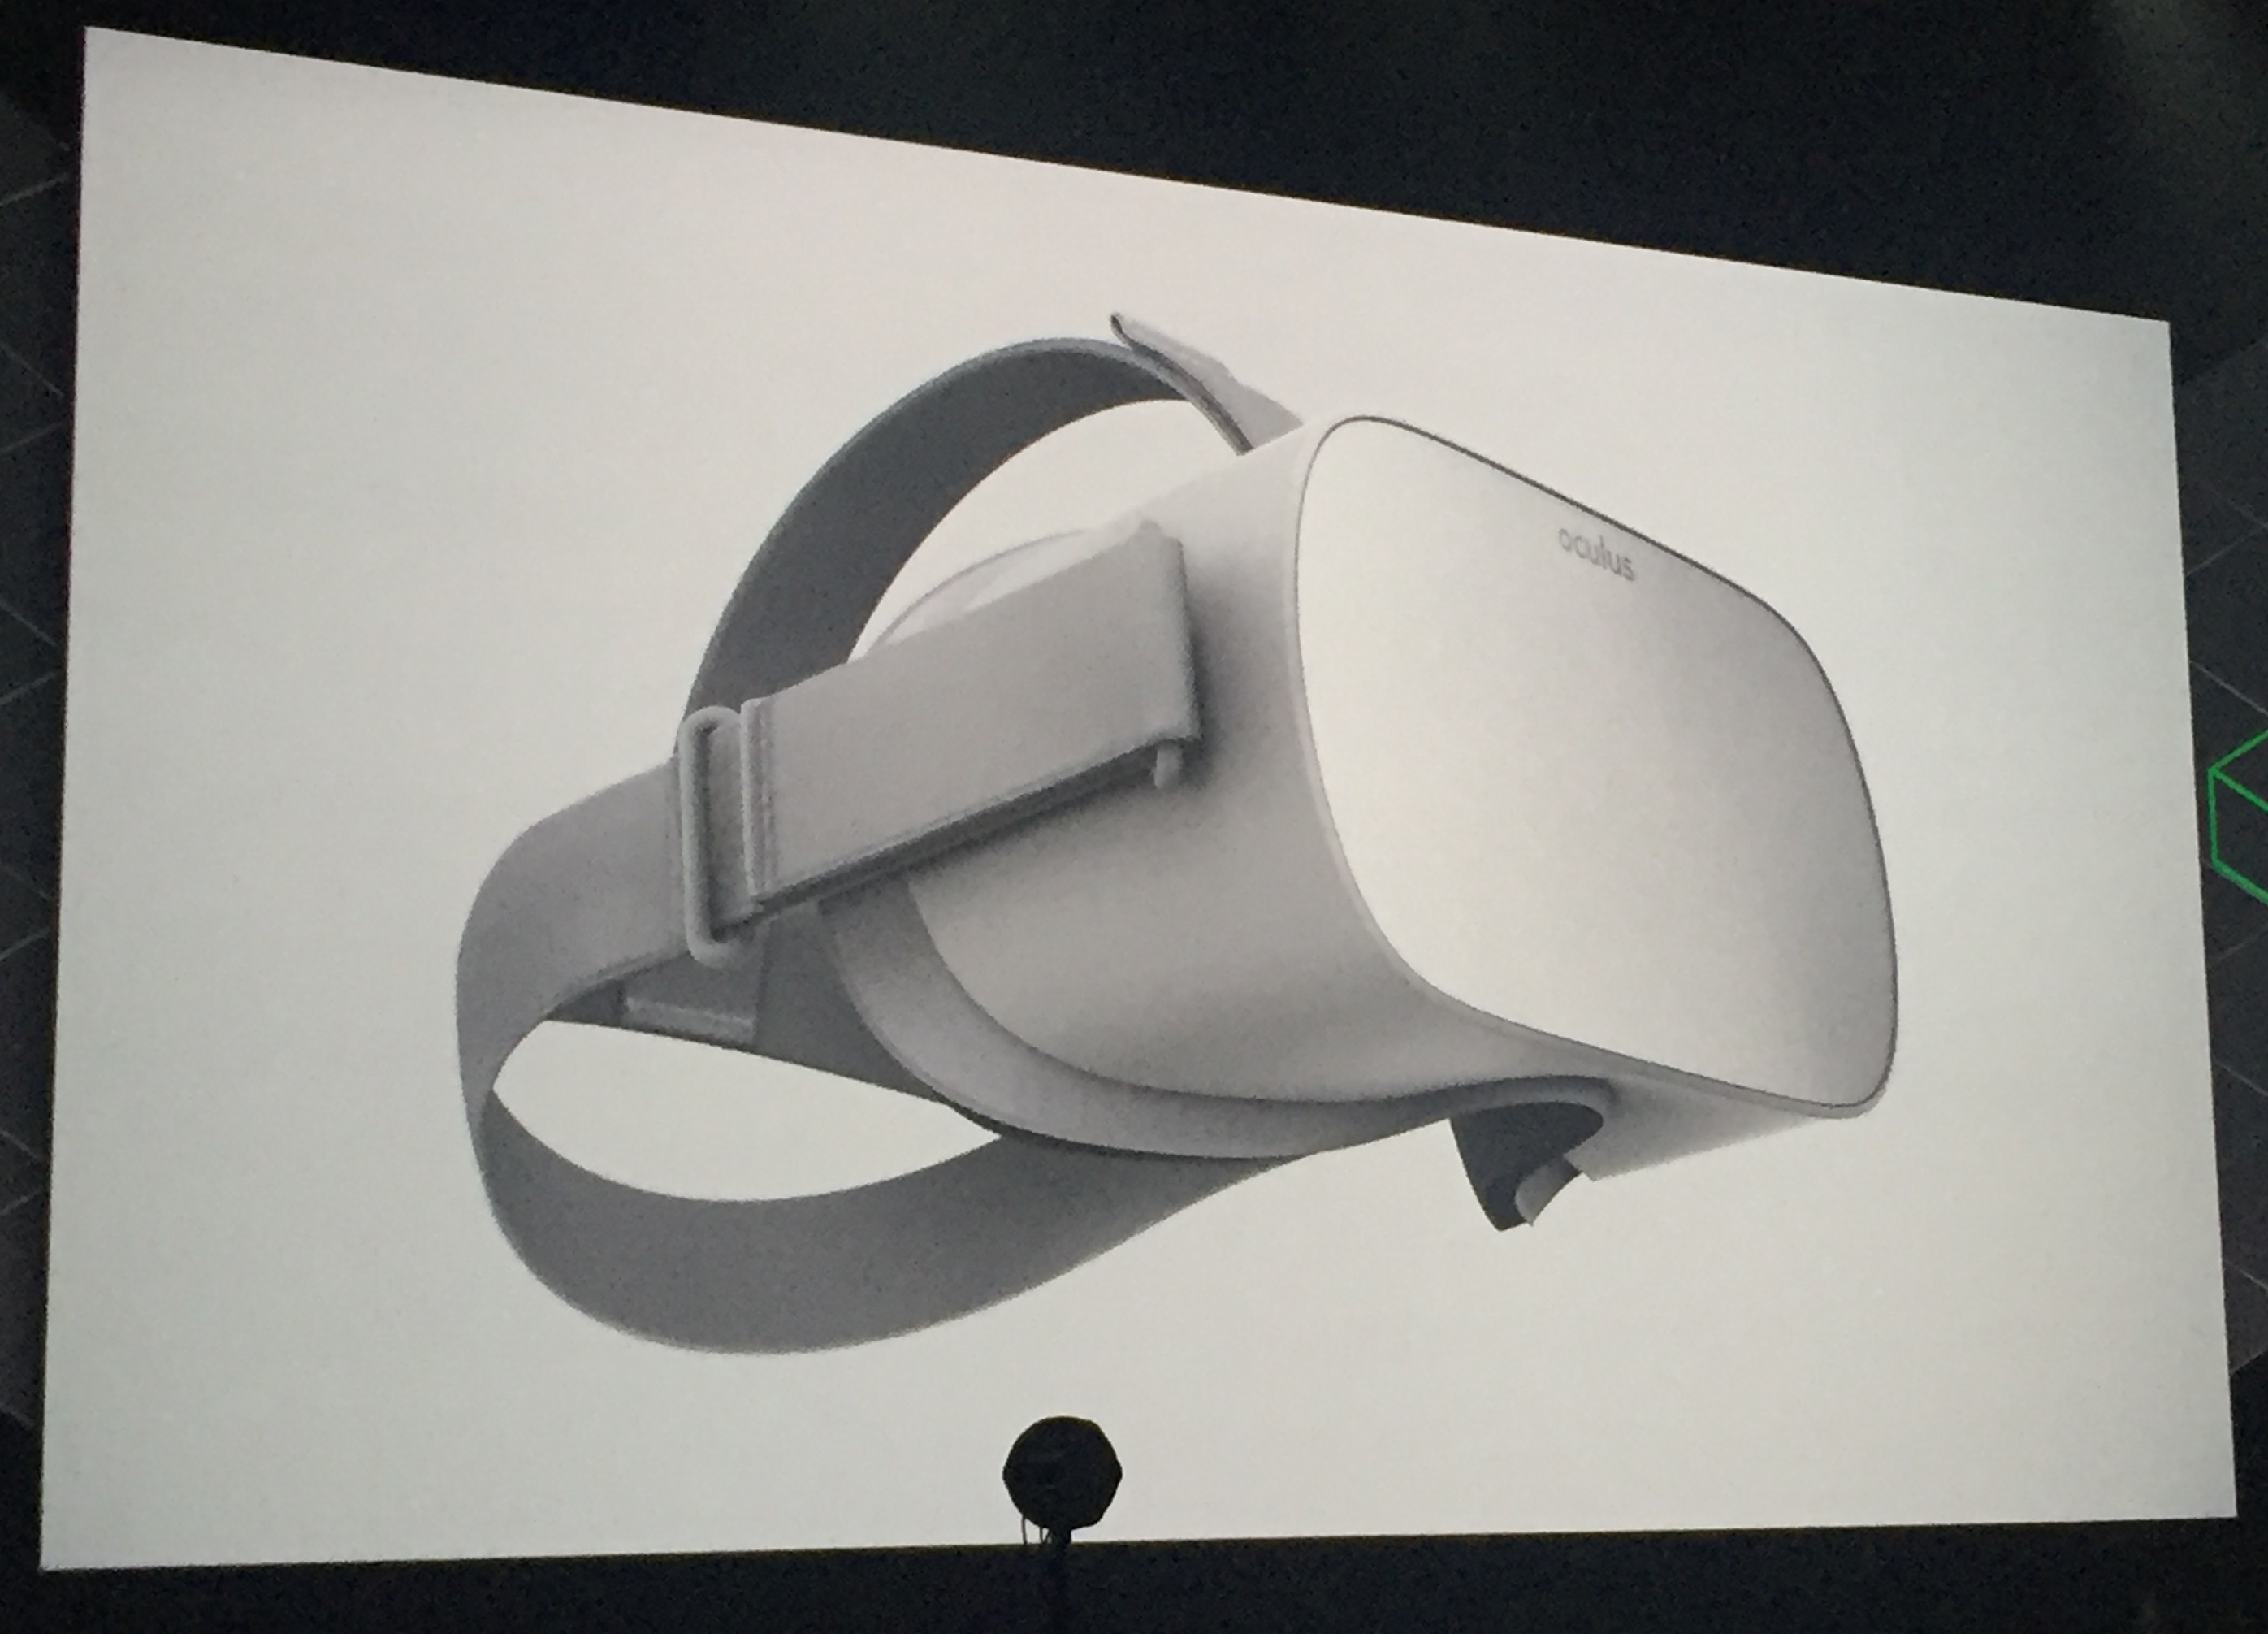 Oculus Go virtual reality headset.